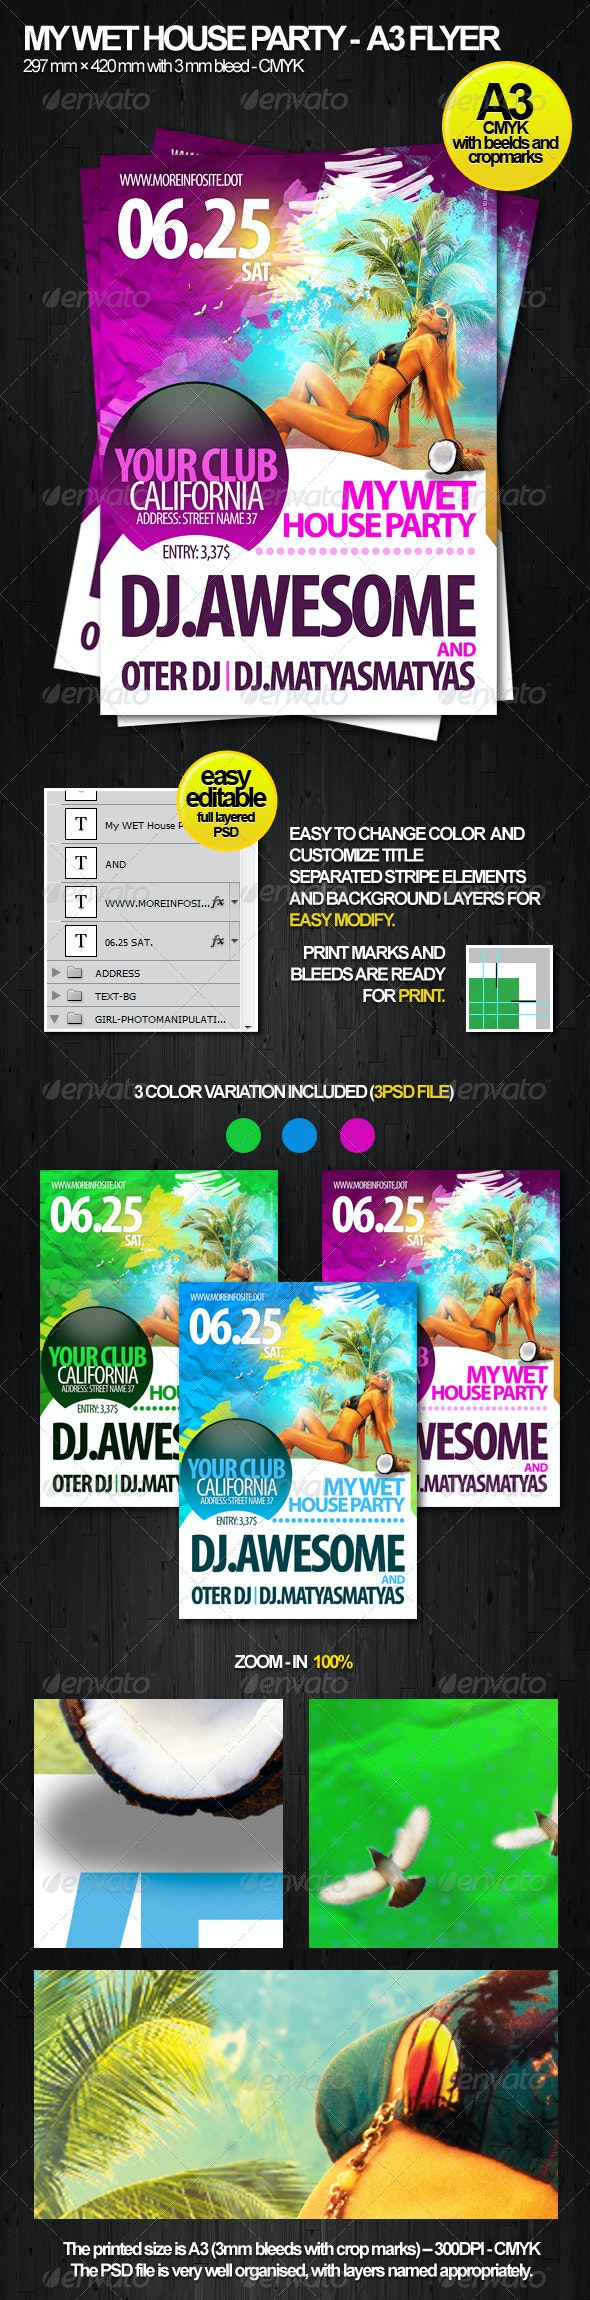 Wet House Party A3 Flyer - Clubs & Parties Events